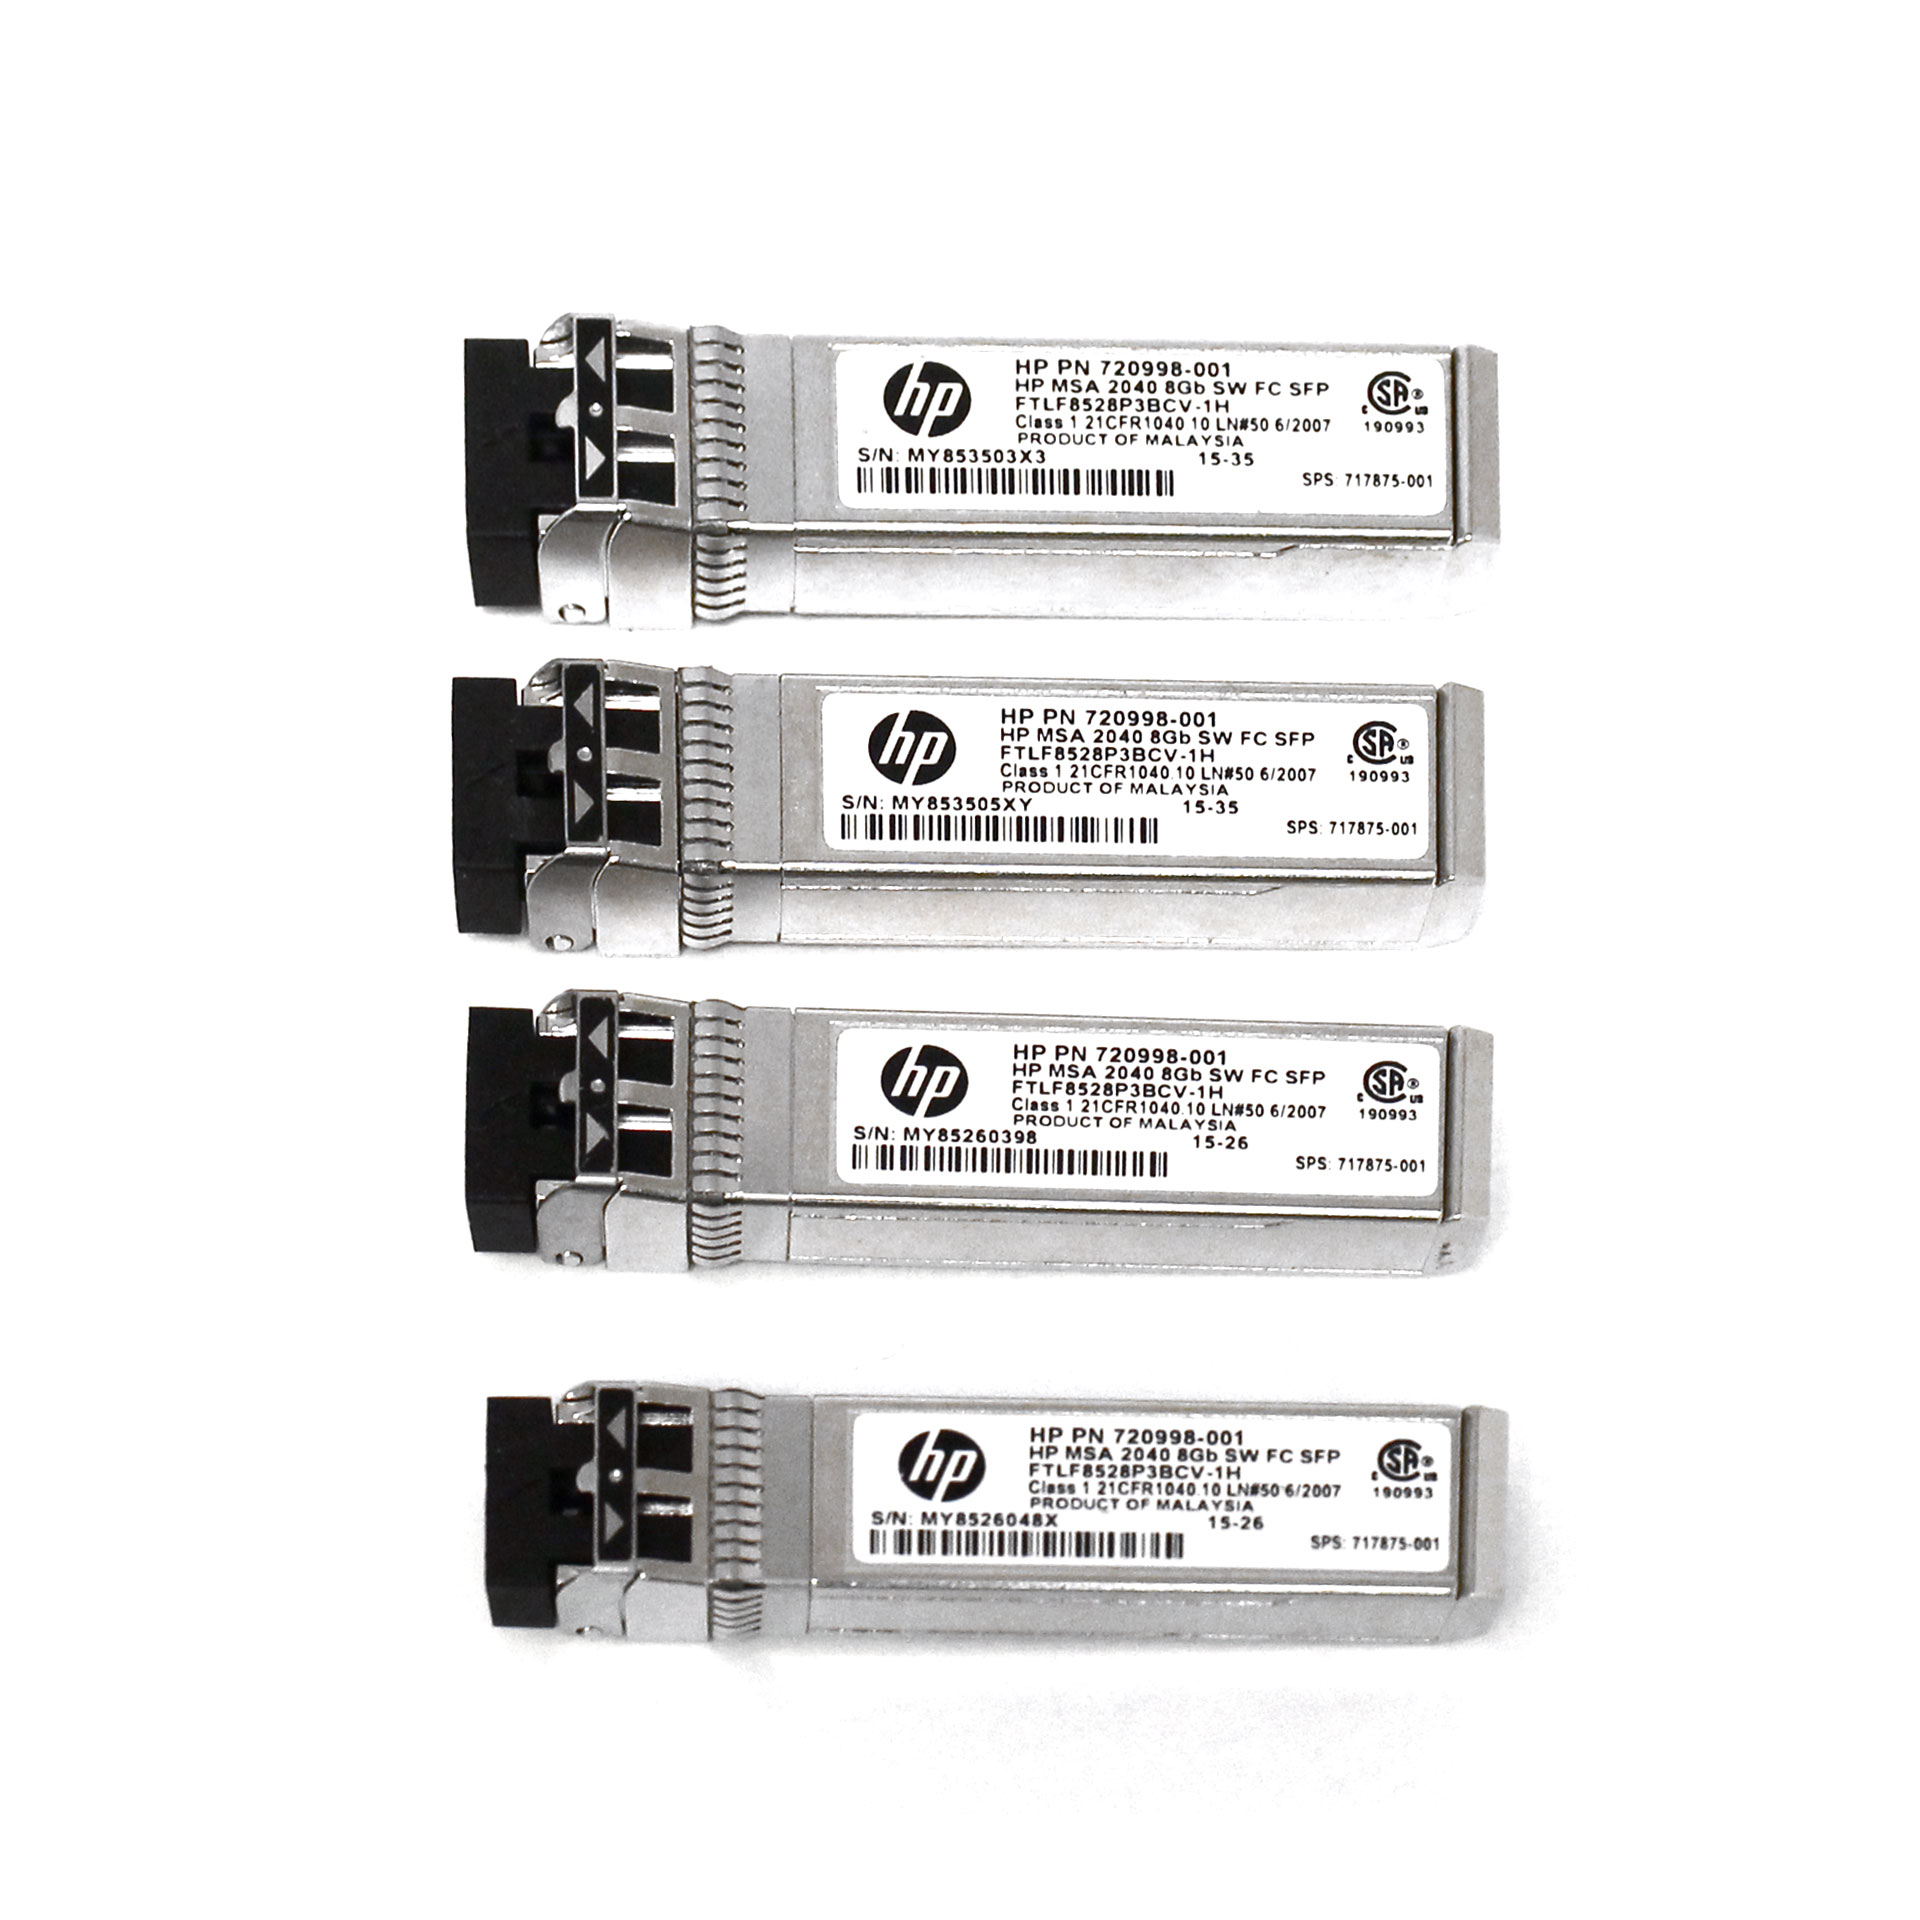 HP MSA 2040 8Gb 720998-001 Fibre SFP+ 4-Pack Transceiver C8R23A